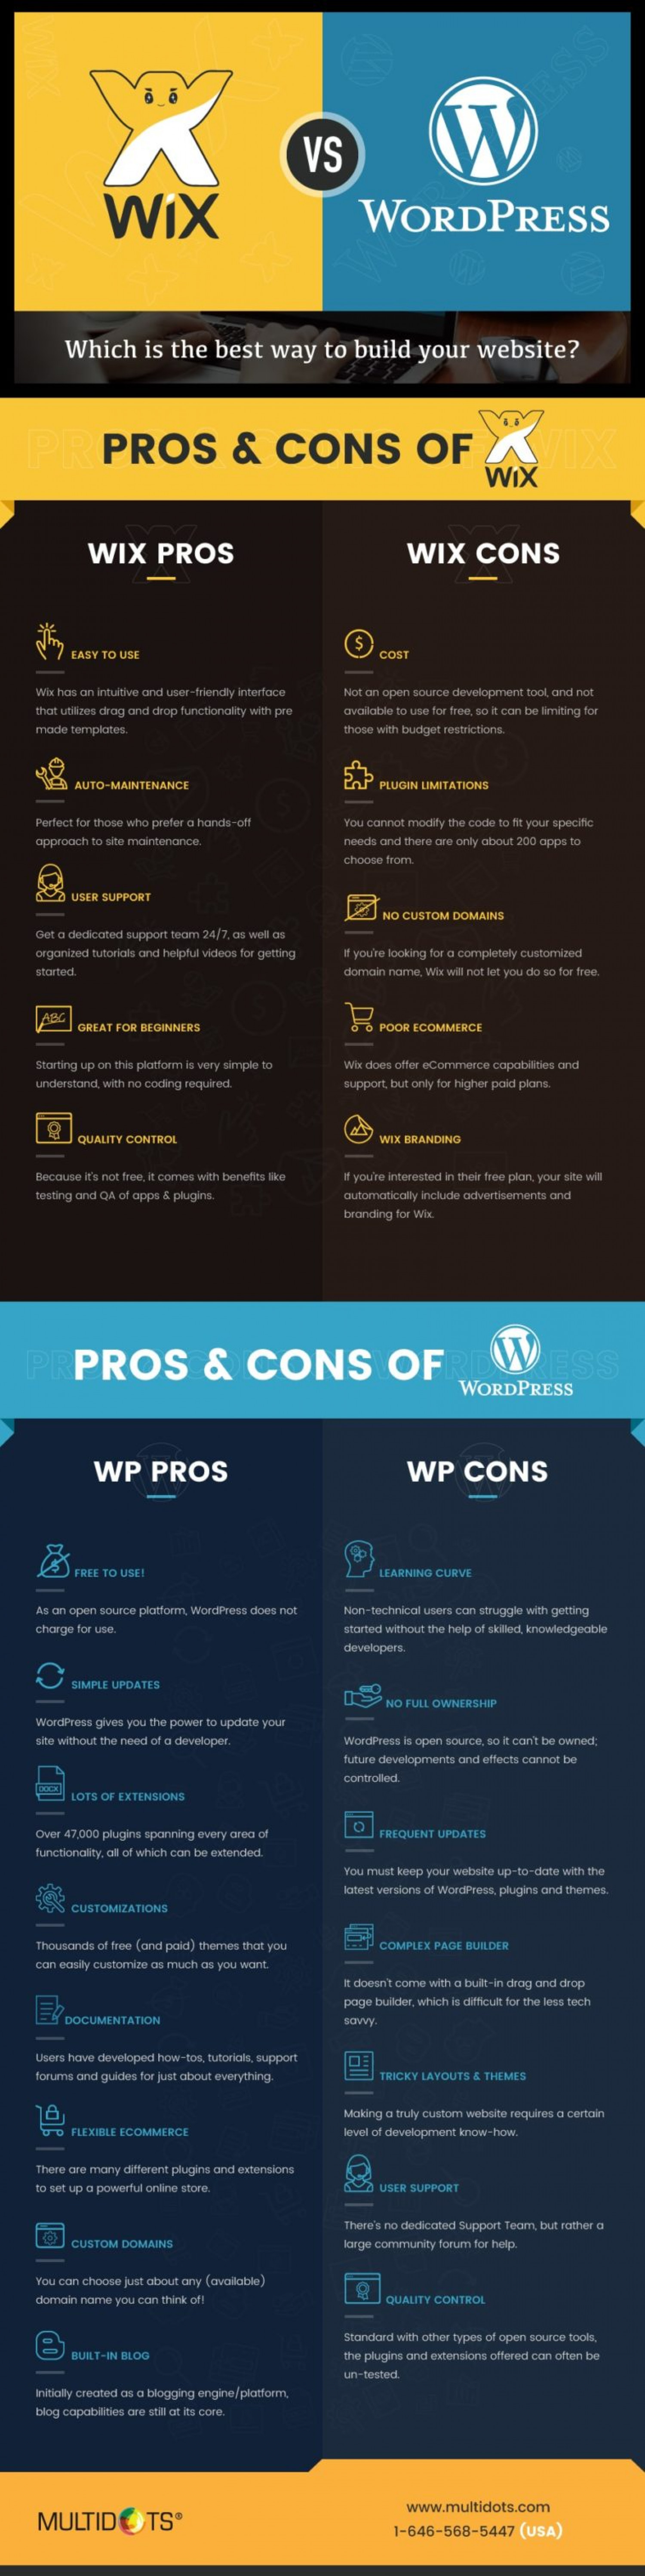 Wix vs. WordPress: Which is the Best Way to Build Your Website? Infographic